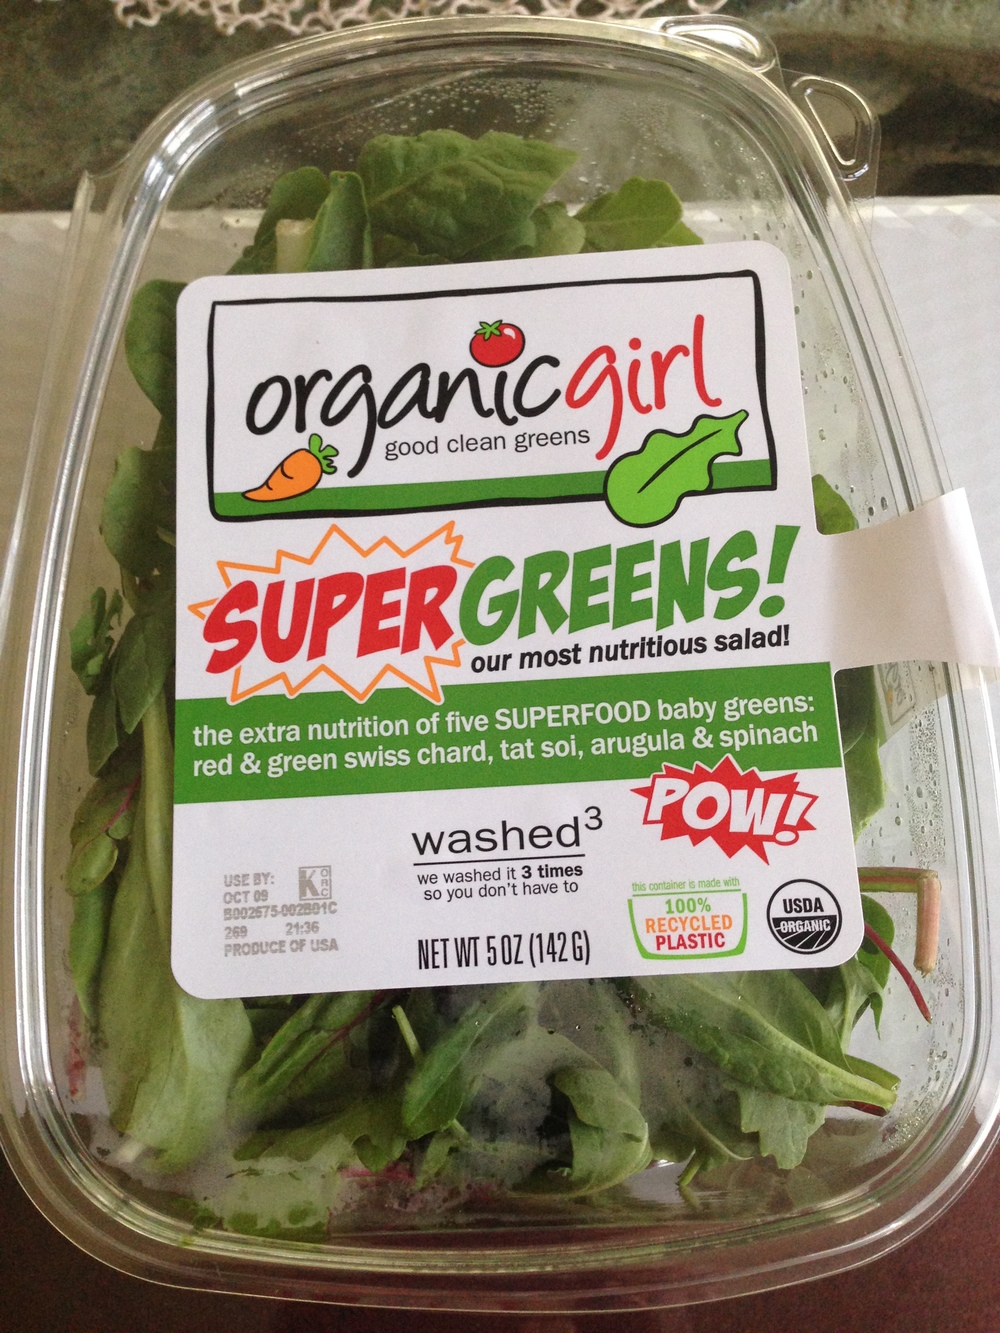 Organic Girl SuperGreens